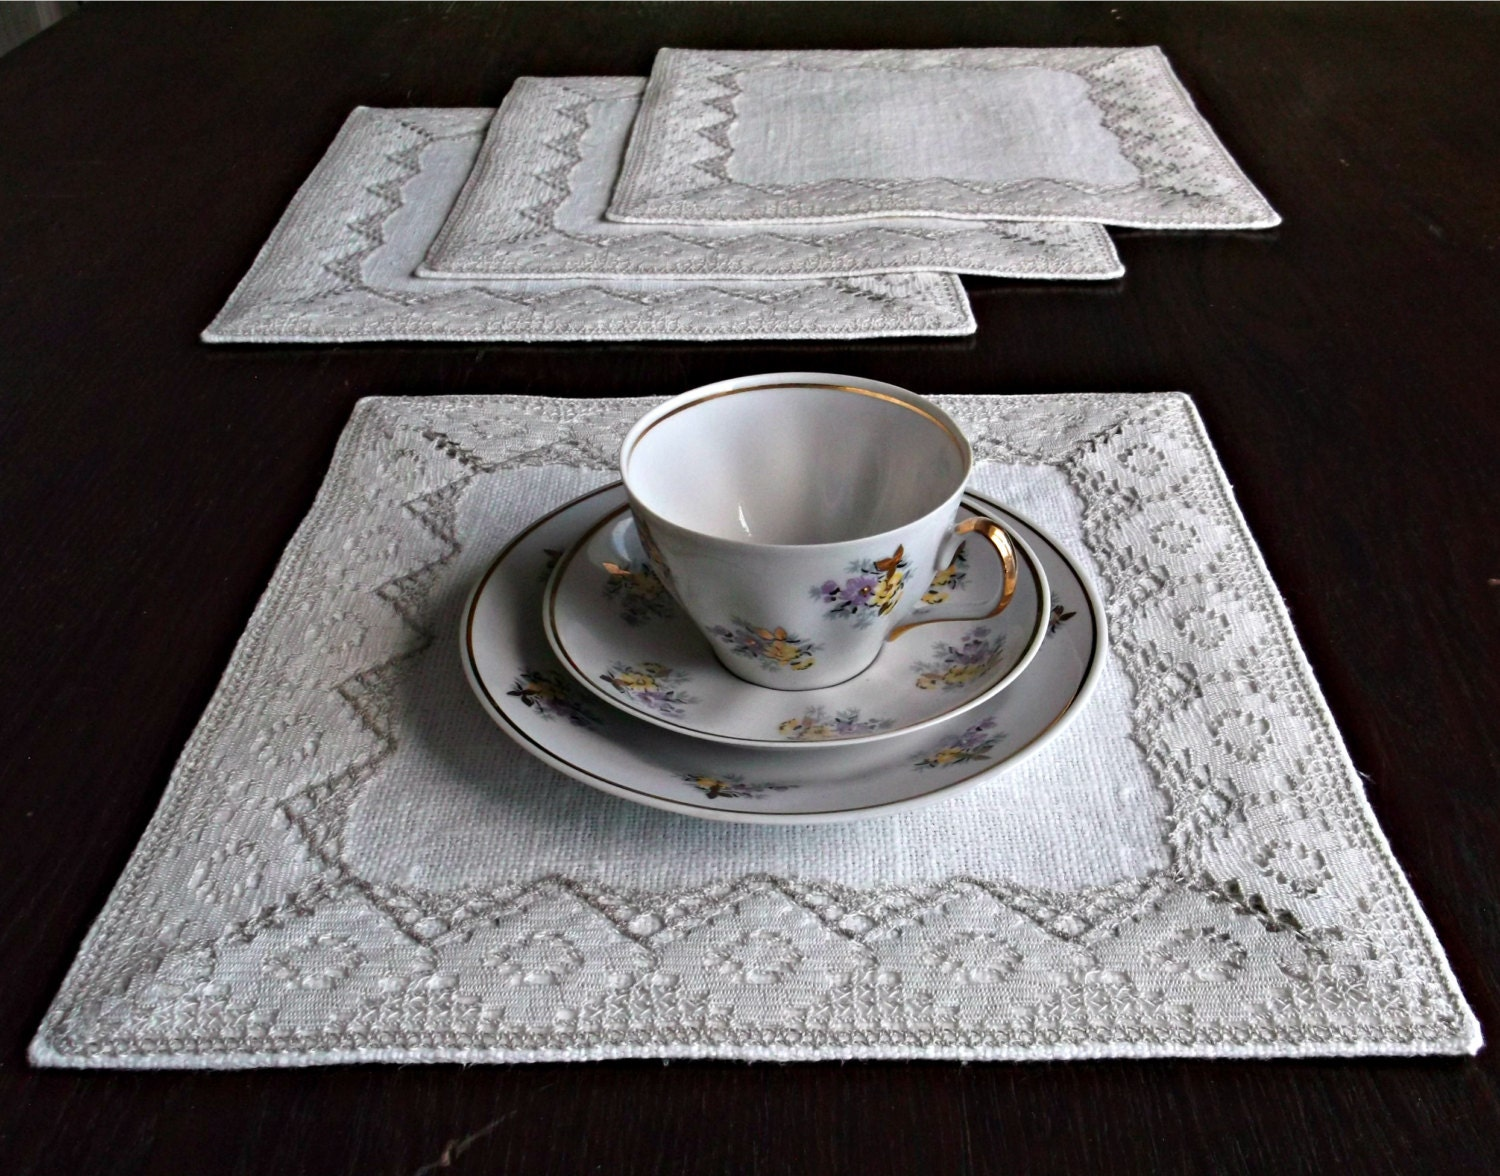 Off white fabric placemats linen lace table mat small square for Small square placemats